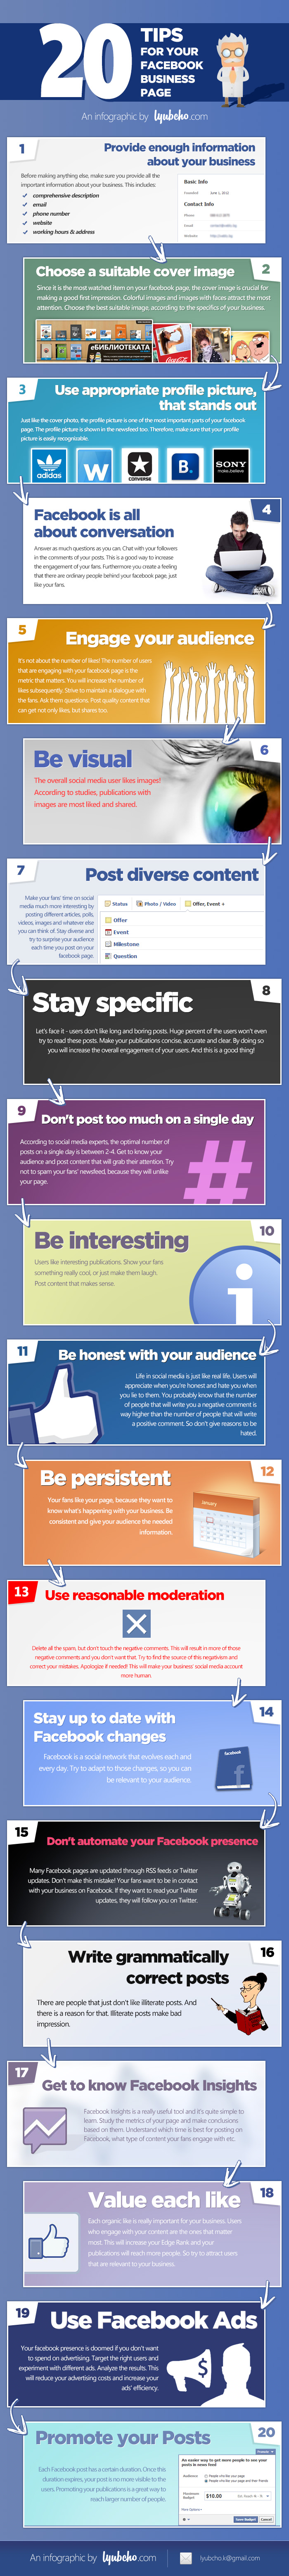 20TipsforyourFacebookBusinessPage_51d14bf34a514